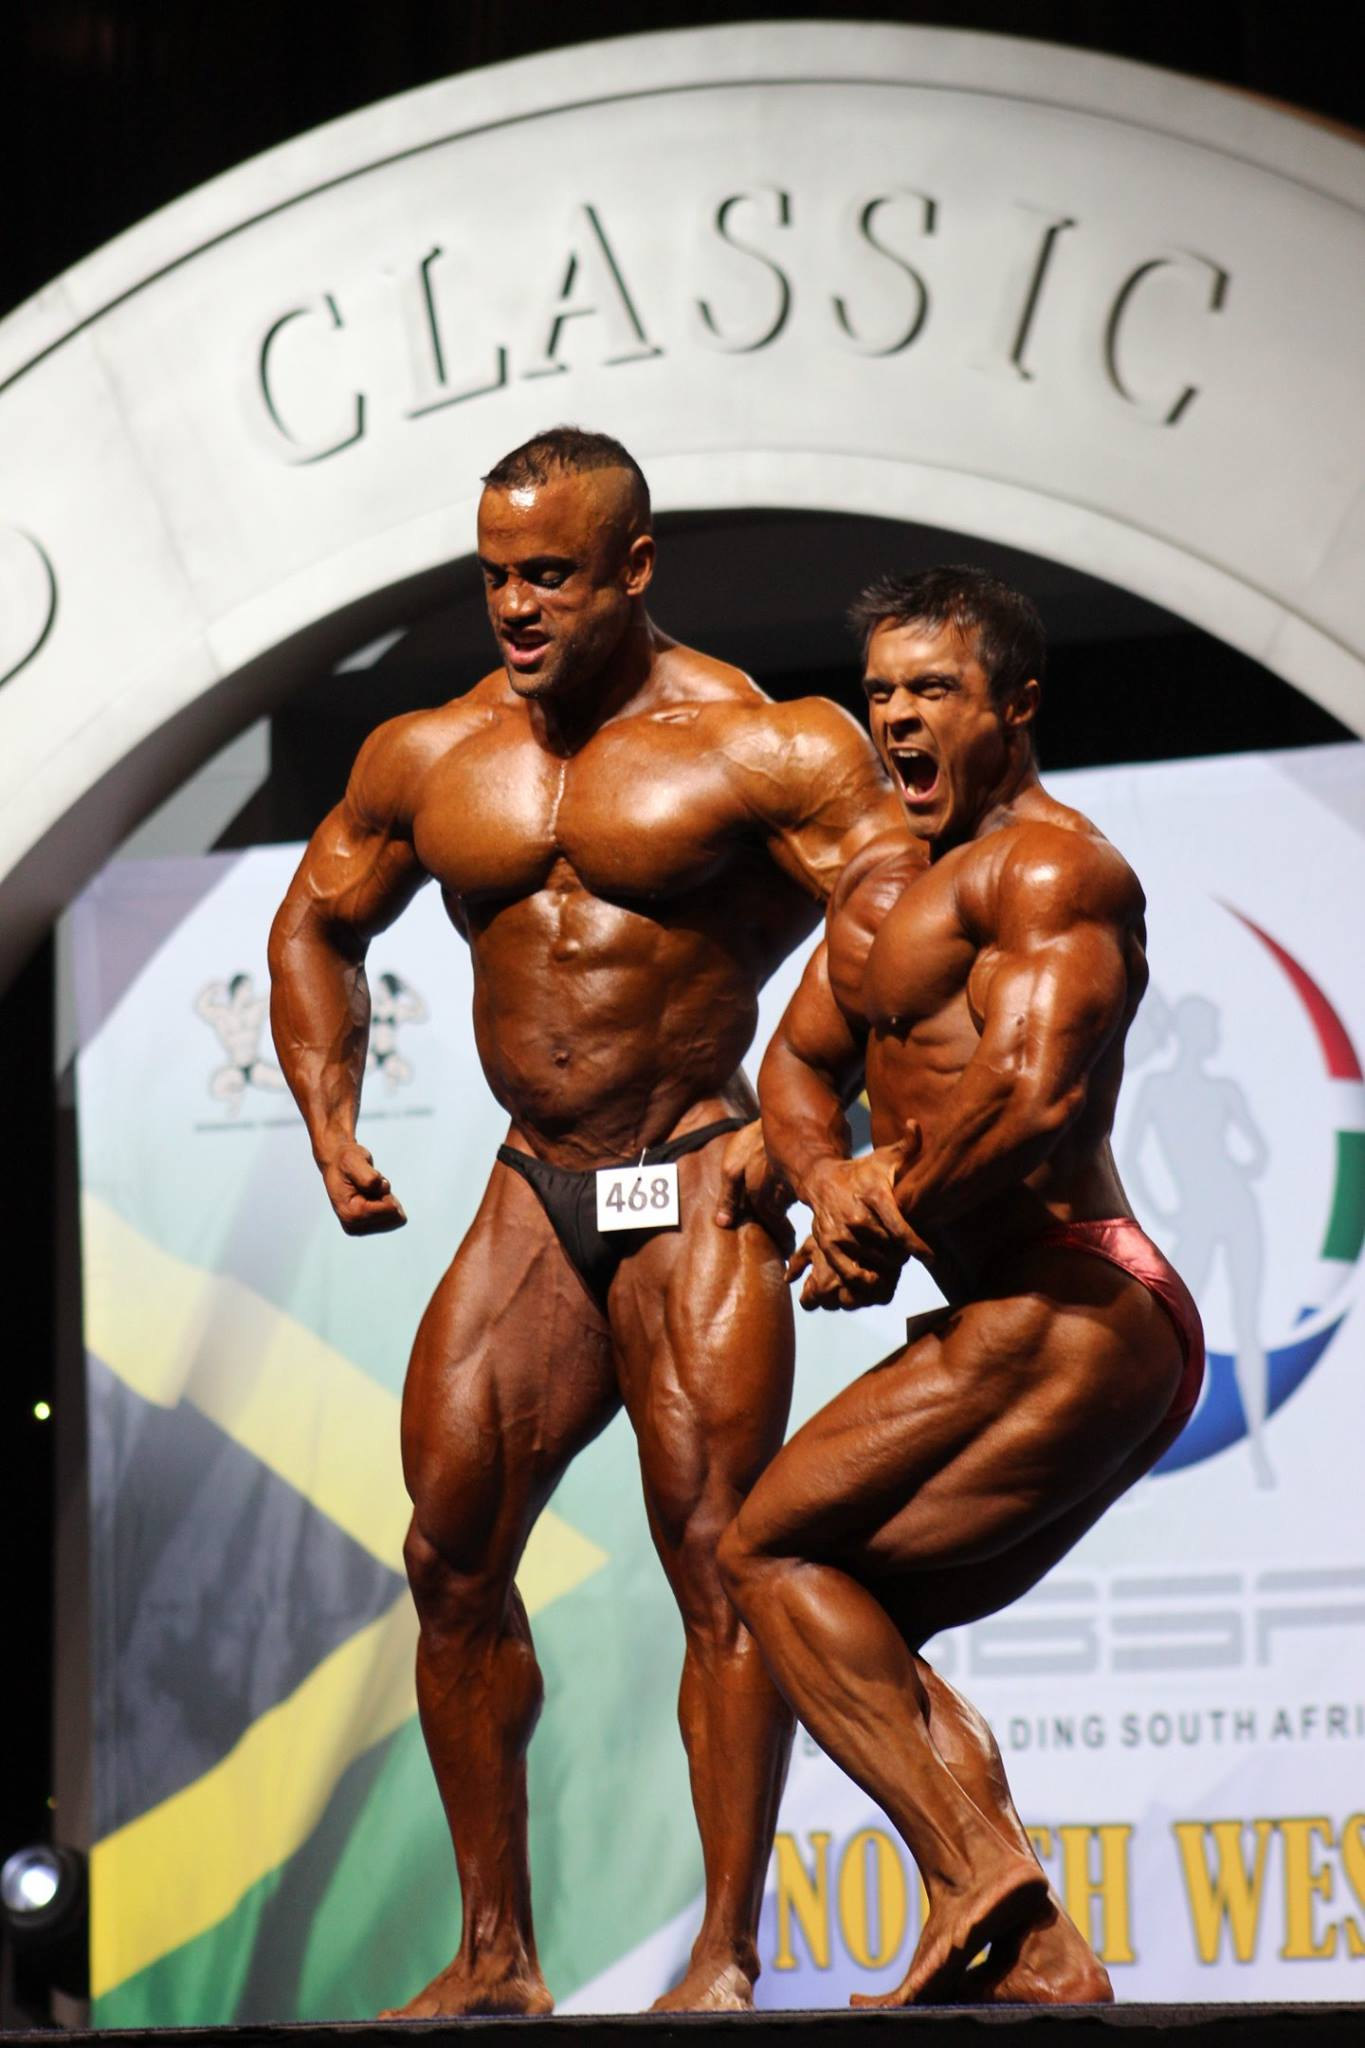 Arnold Classic Africa 2016 Photo Gallery!